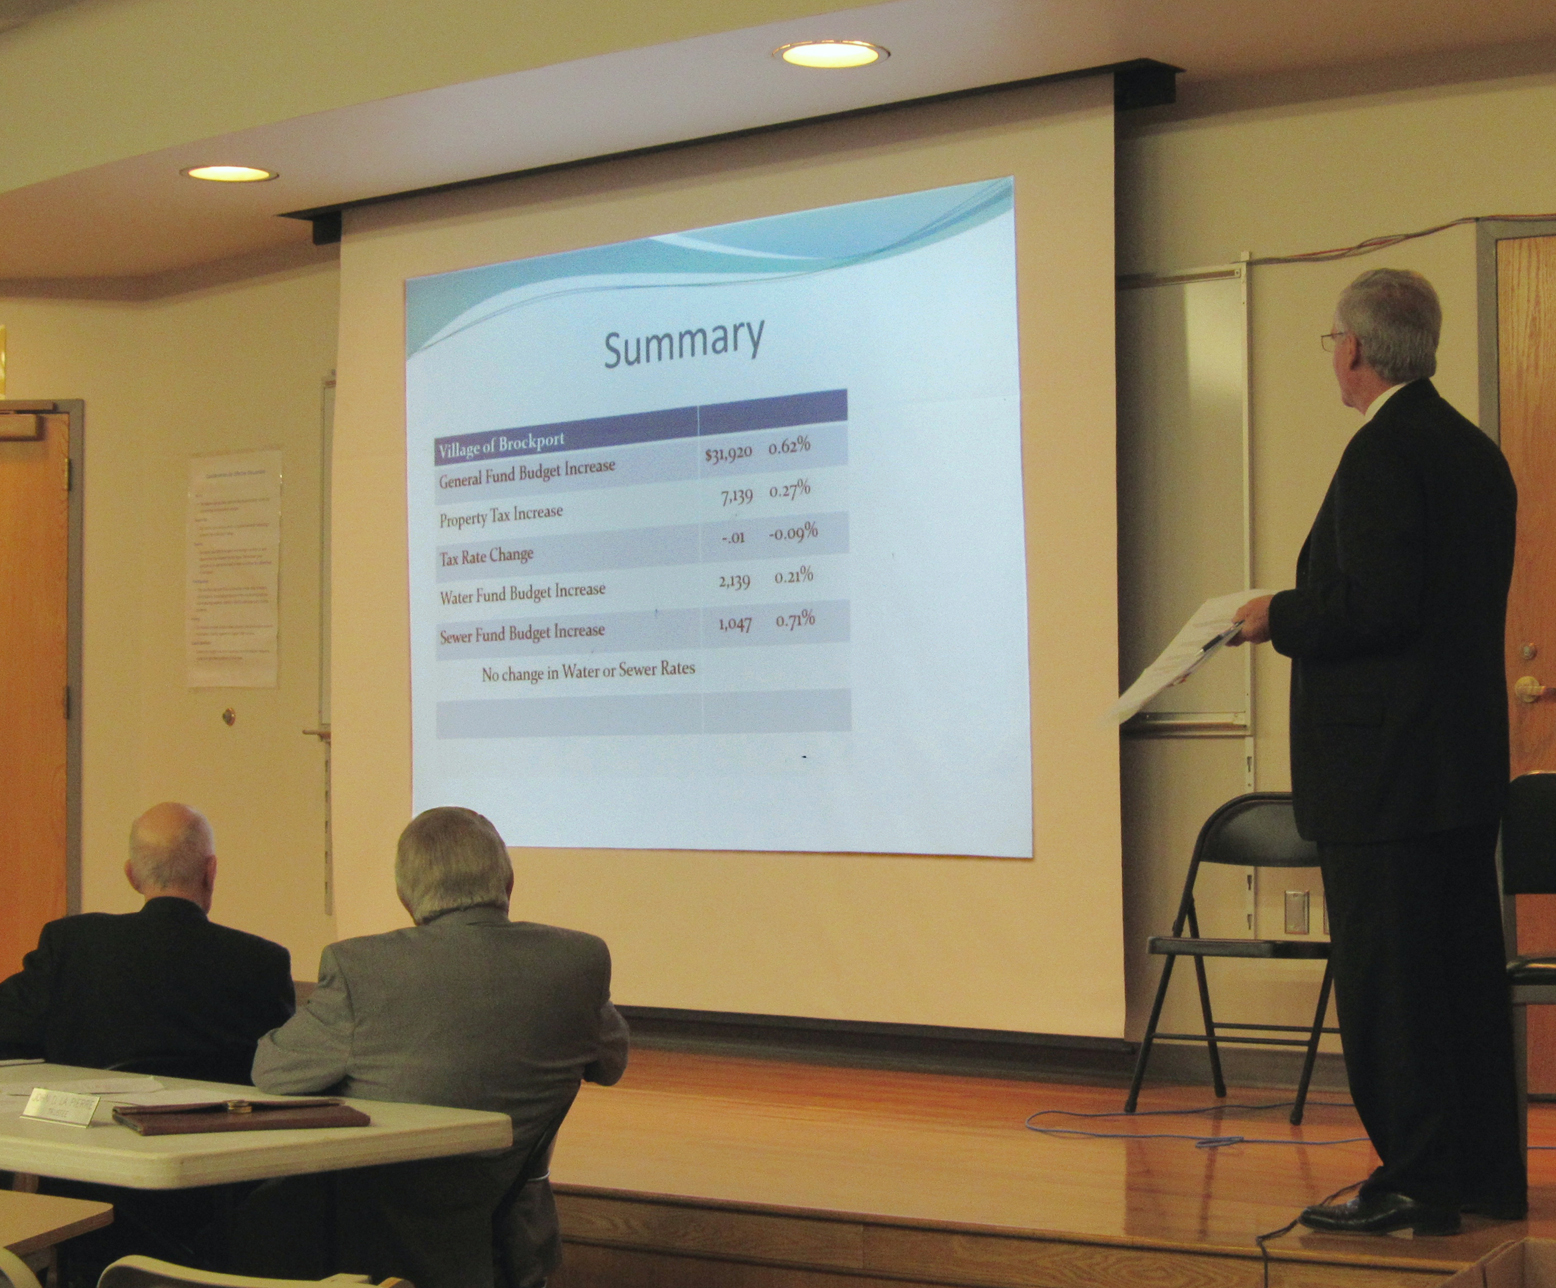 Brockport Treasurer Daniel Hendricks (standing far right) presents the 2016-17 Village budget proposal April 11 while trustees William Andrews and John LaPierre look on. K. Gabalski photo